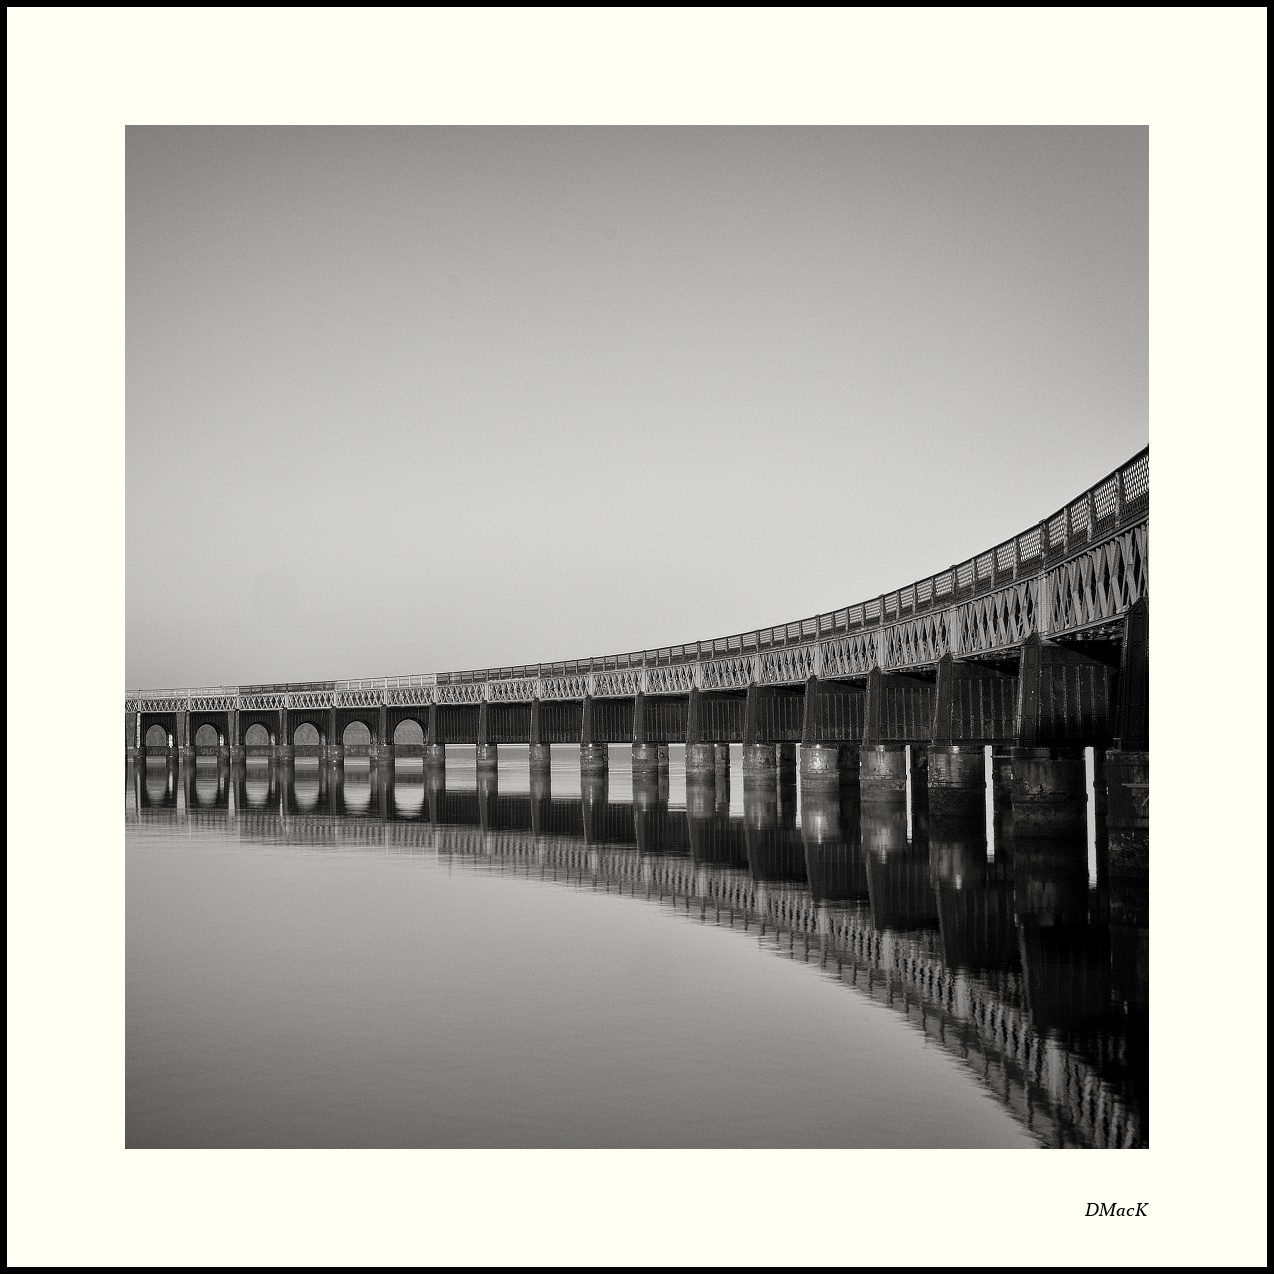 The Tay Bridge #2